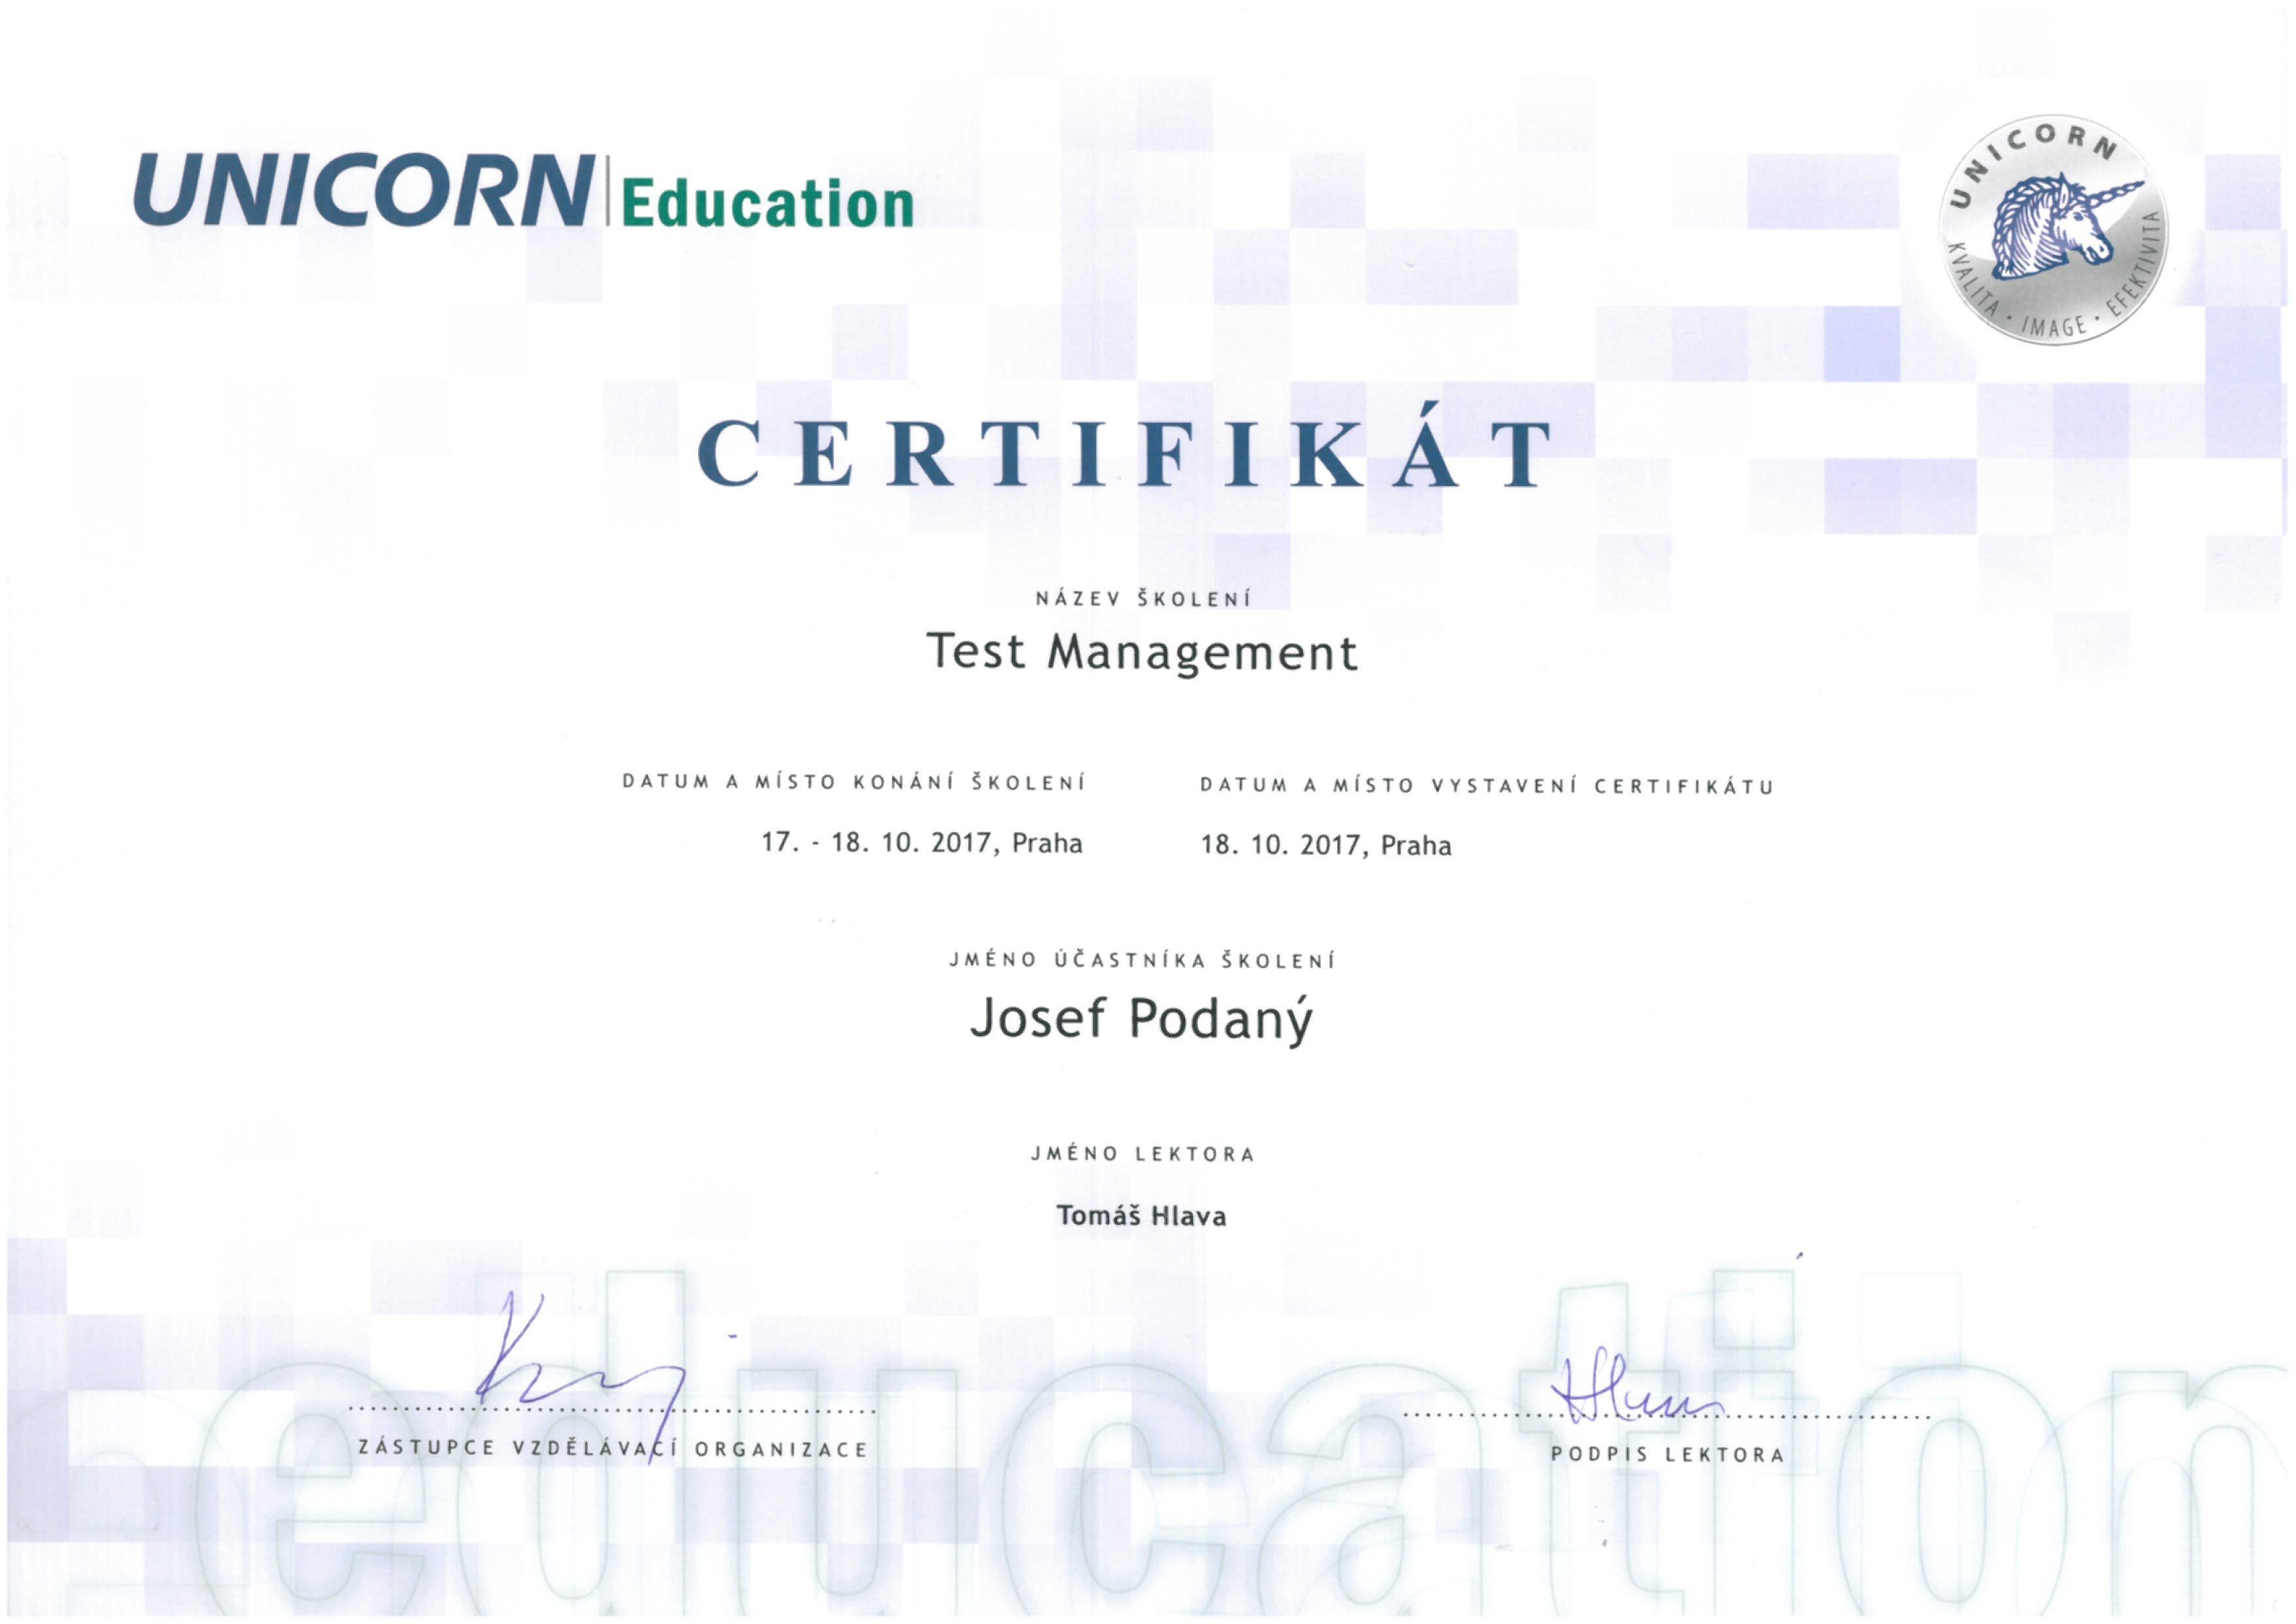 UNICORN Test Management Certifikat